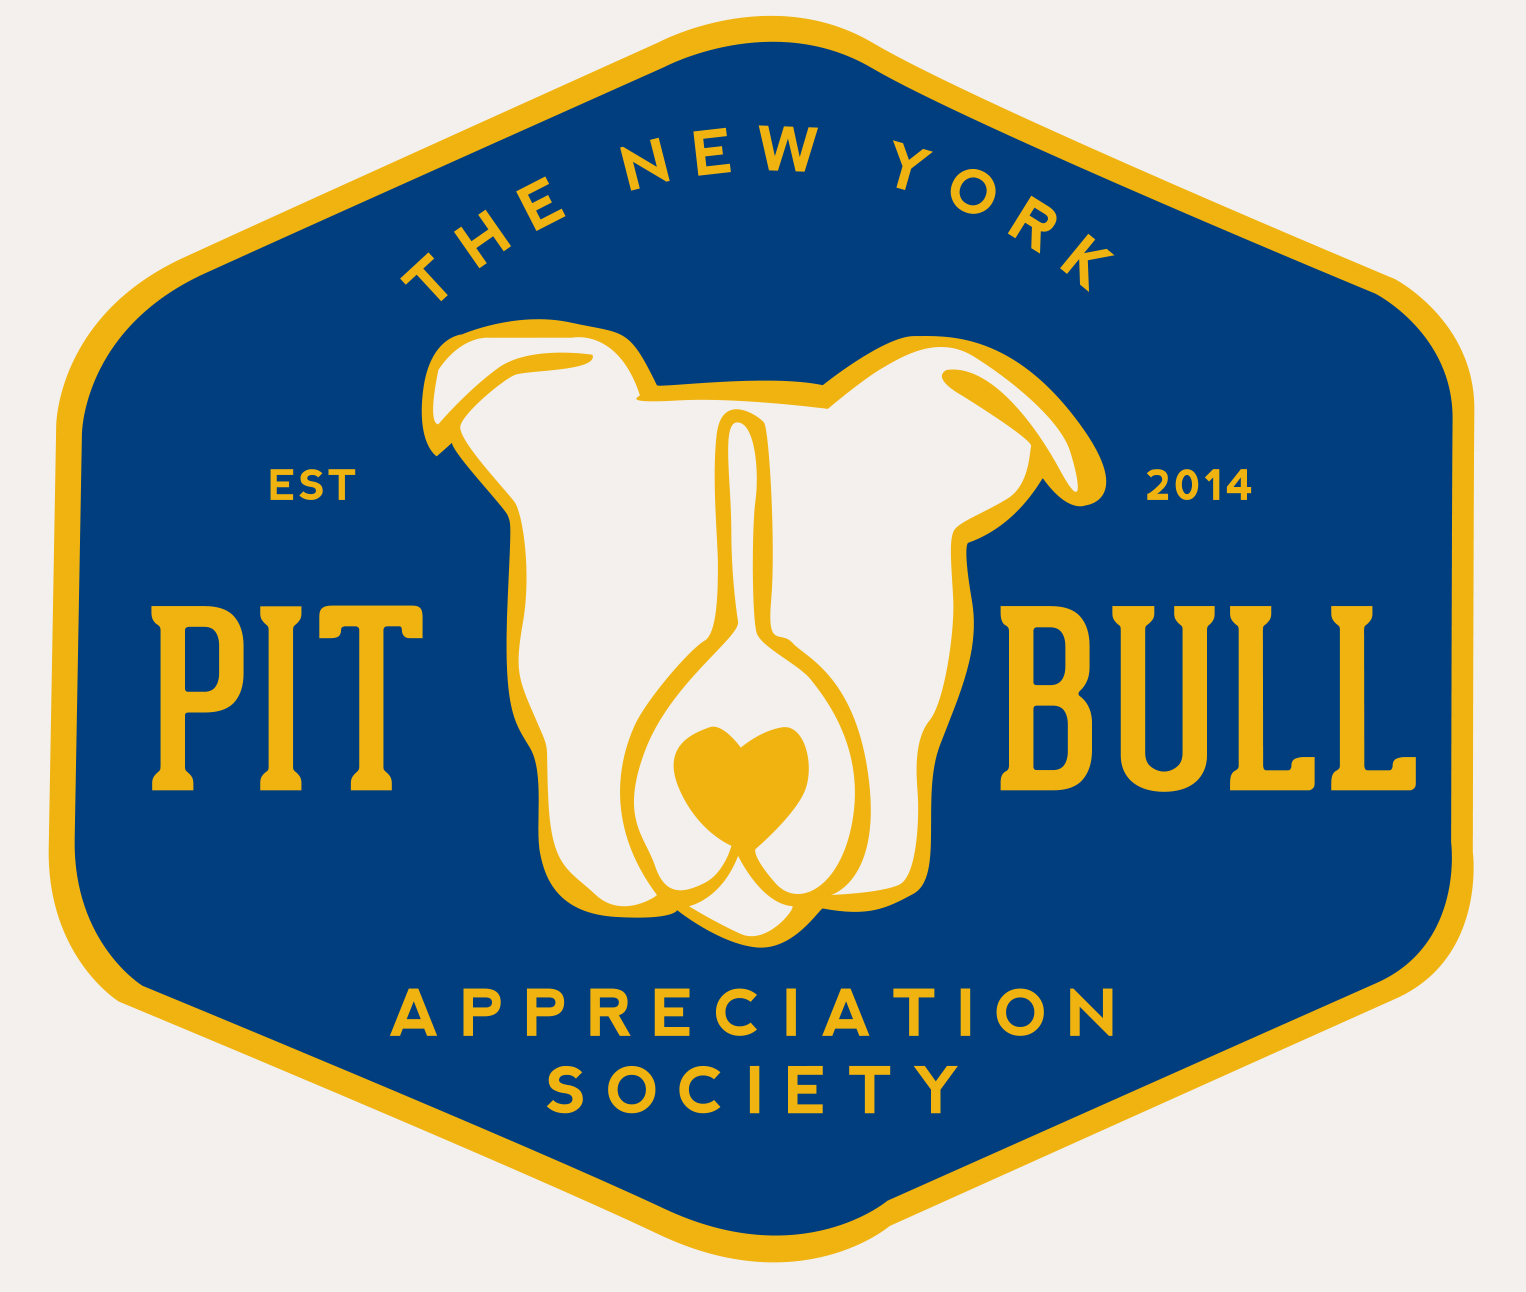 New York Pit Bull Appreciation Society logo